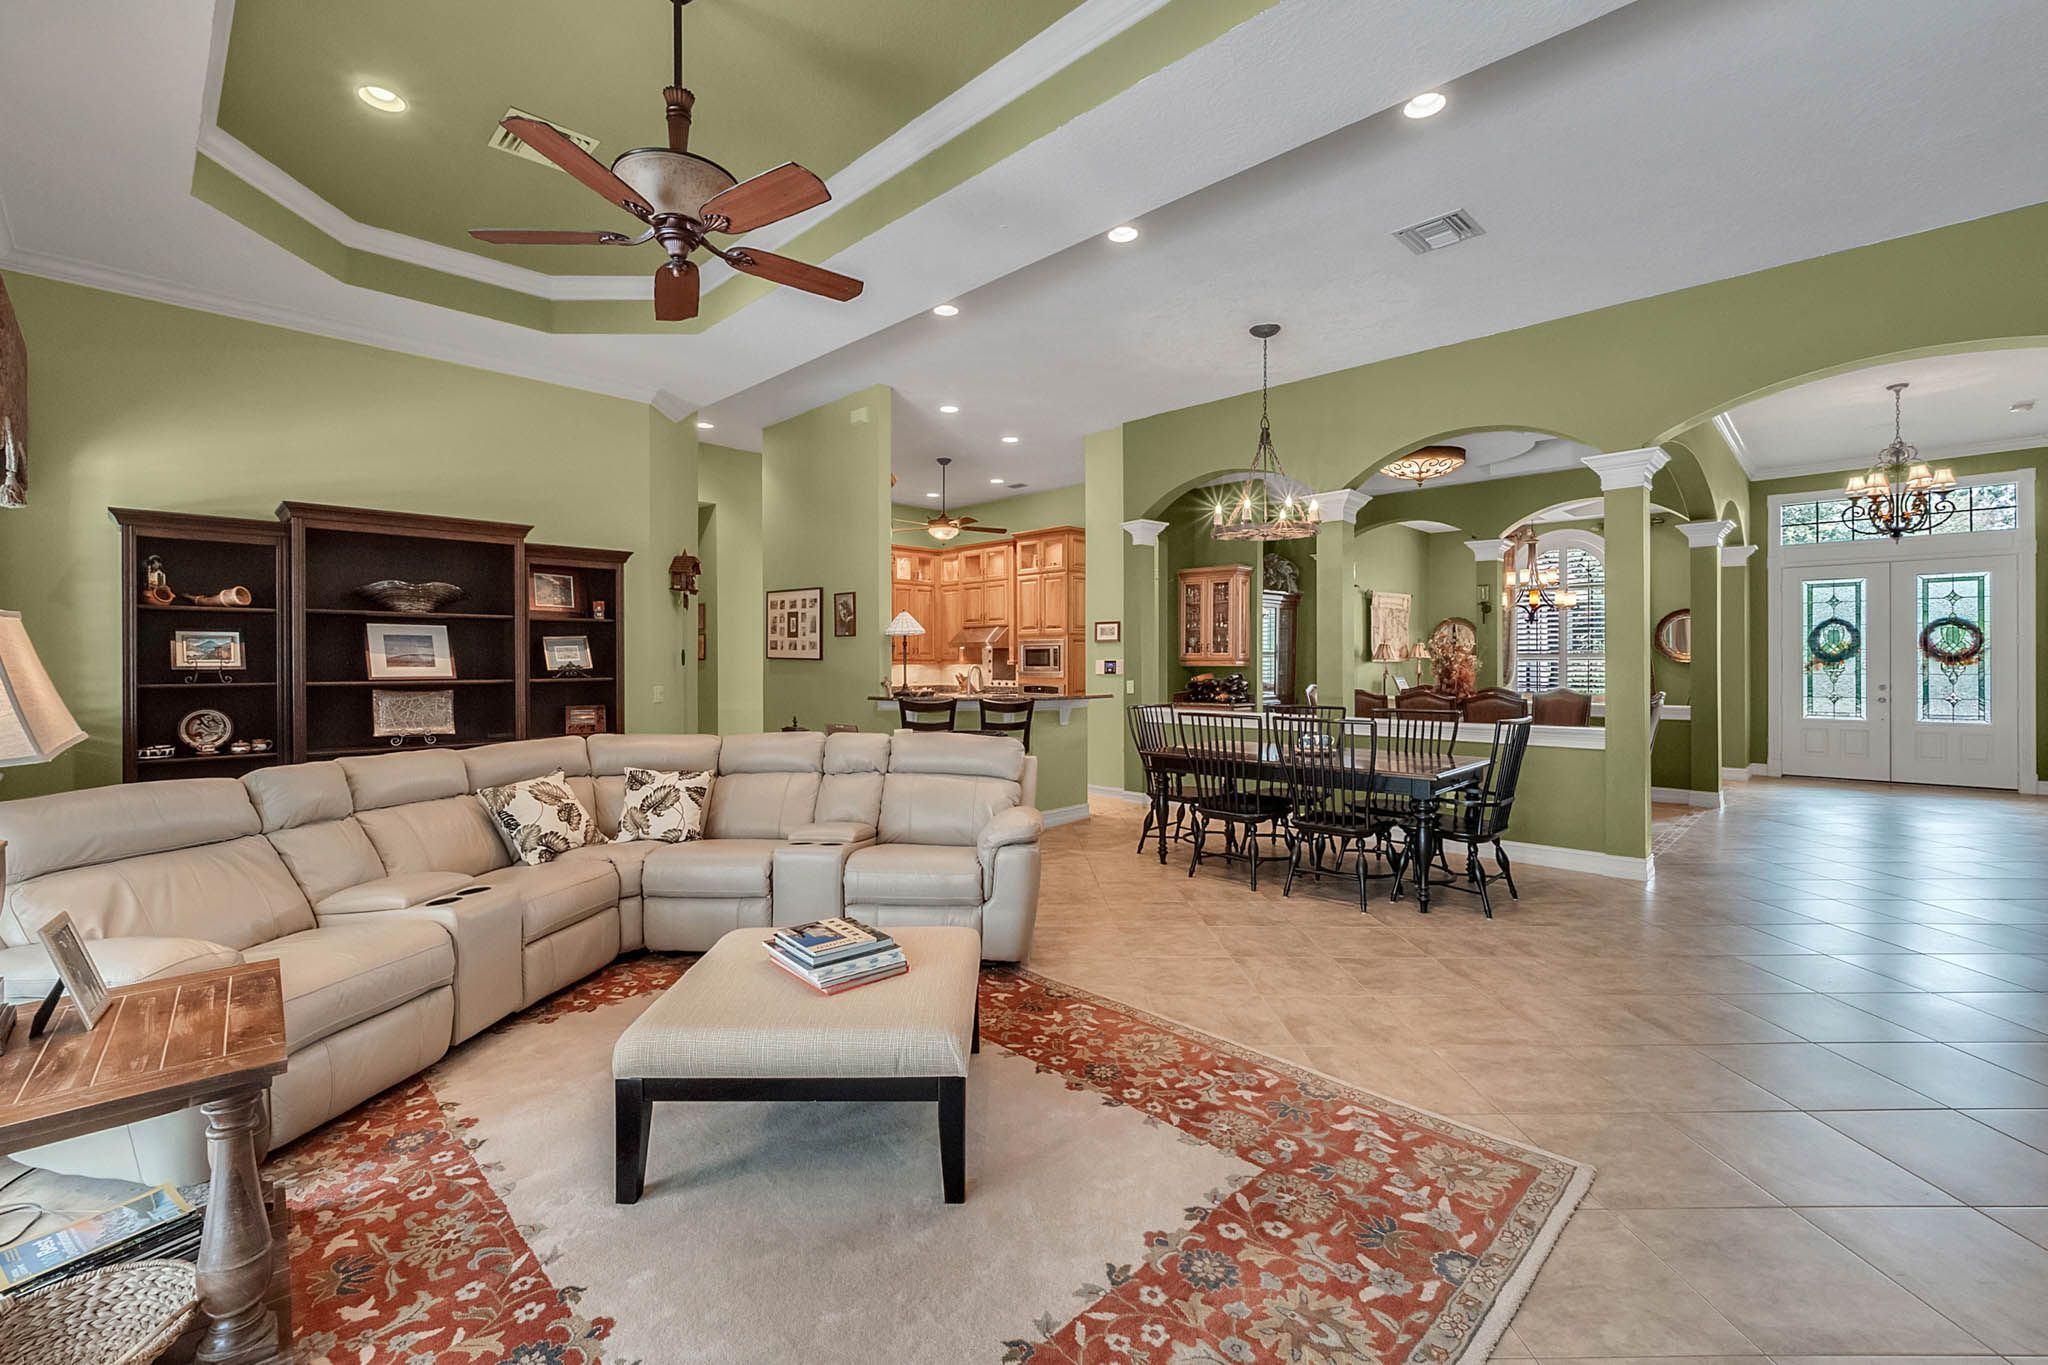 5 bedrooms, pool, neat as can be. Gated community in Lake